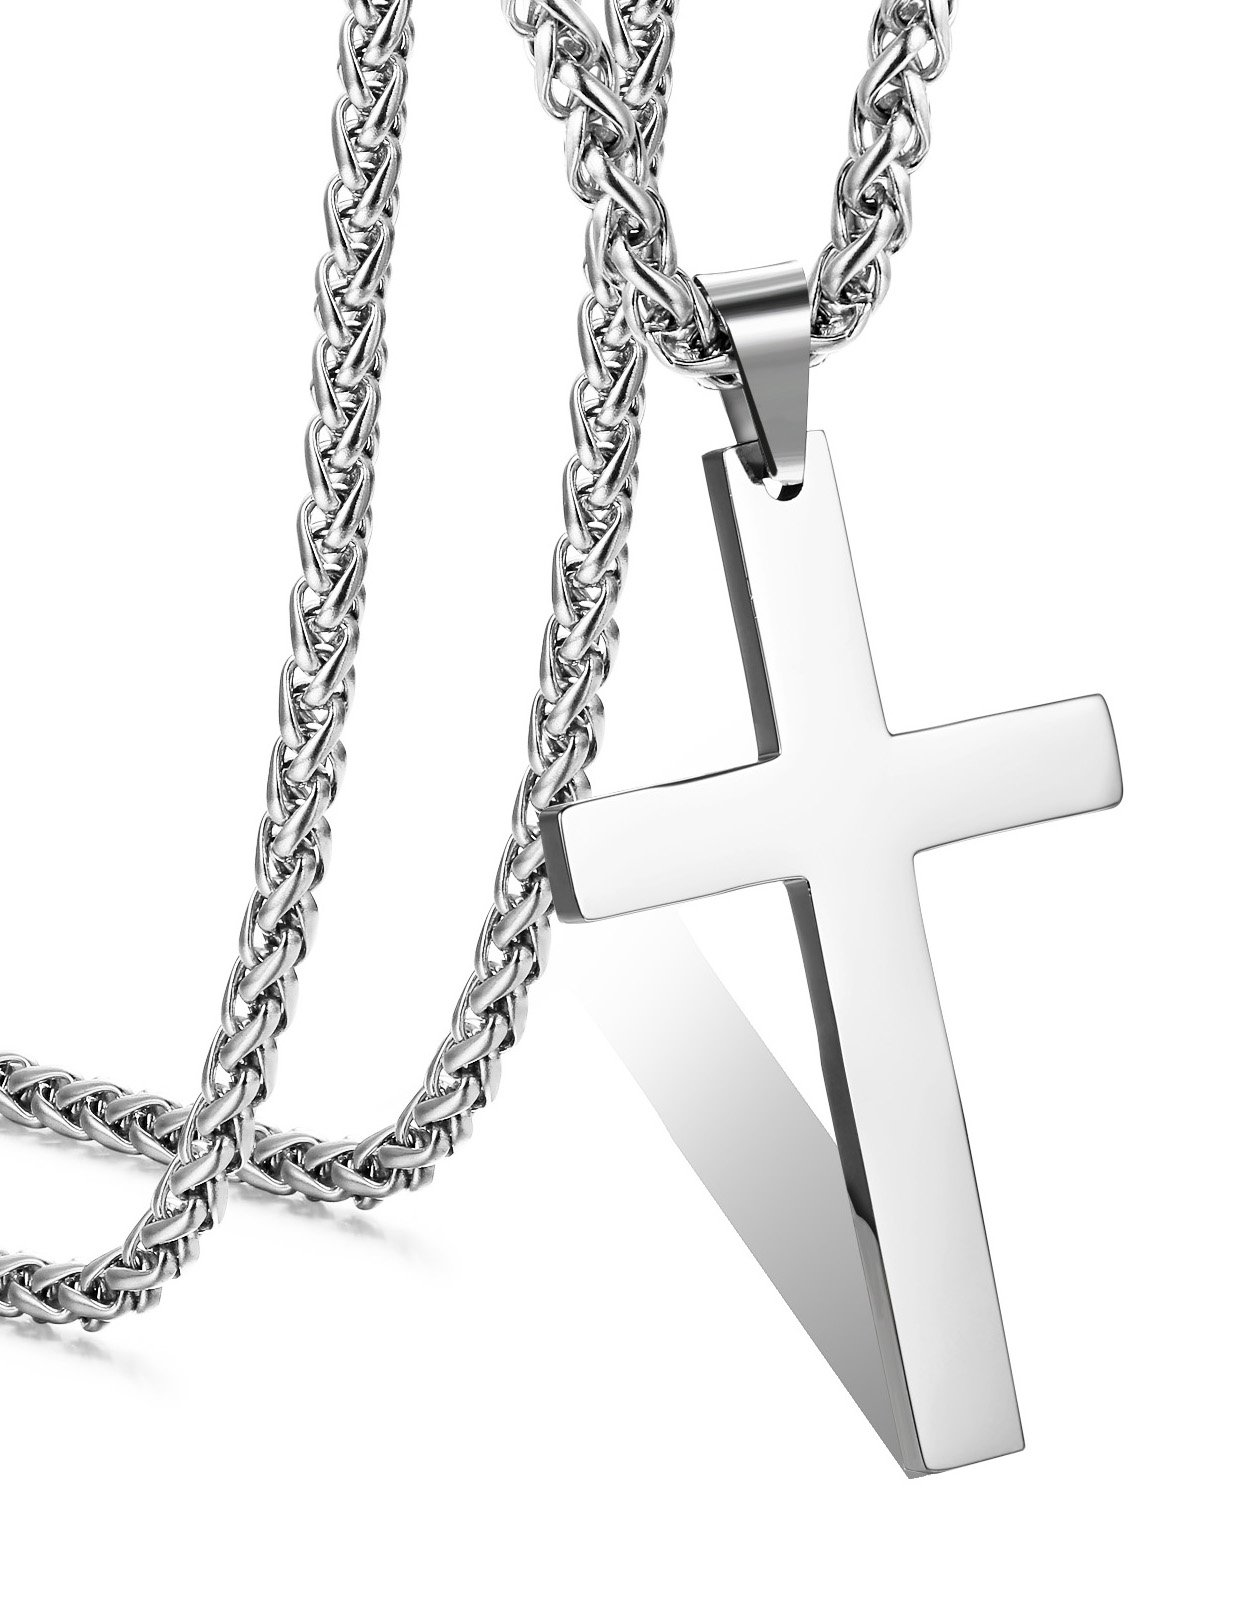 FIBO STEEL Stainless Steel Cross Pendant Wheat Chain Necklace for Men Women 24 Inches